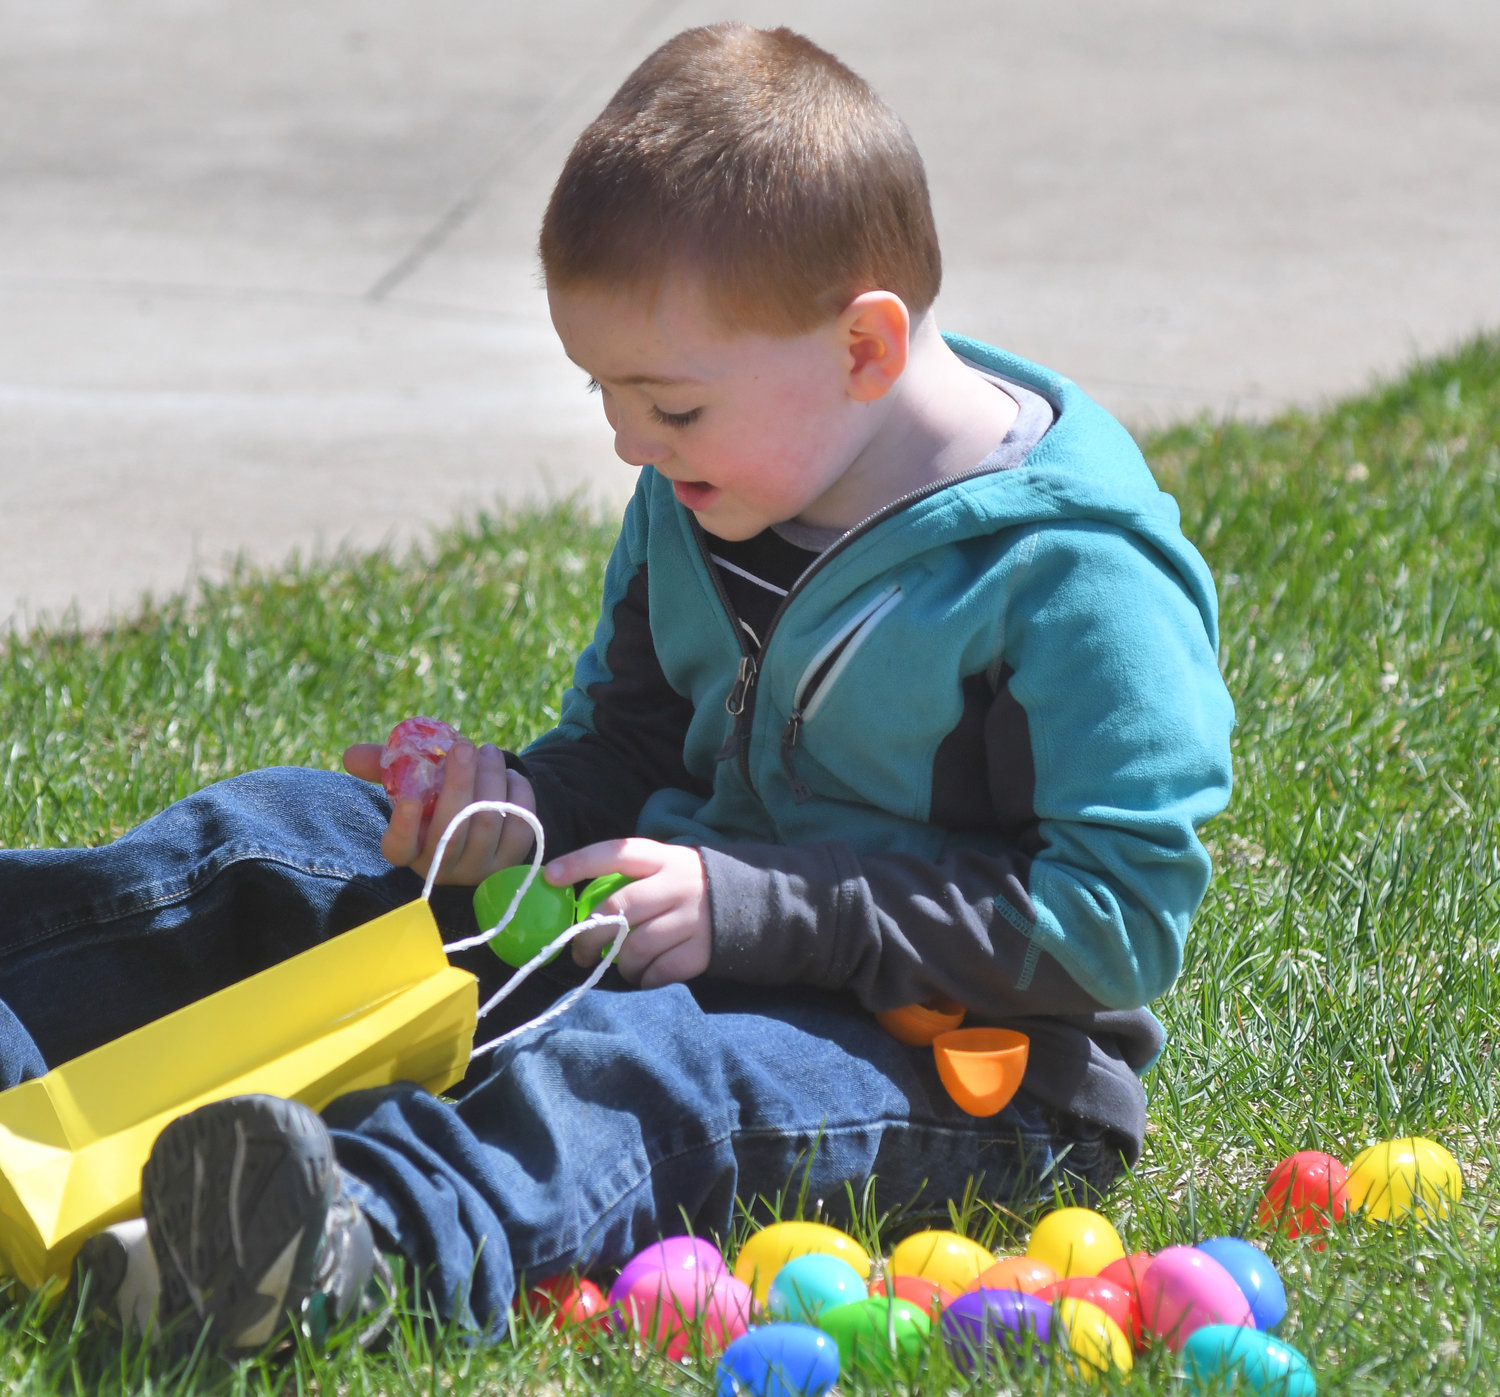 CRACKING THEM OPEN — Greyson Grant, 5, opens up Easter eggs he's gathered at the City Hall Easter Egg Hunt on the Girffo Green. He was at the event with his aunt Rachel Coleman and twin sister Hope Grant.